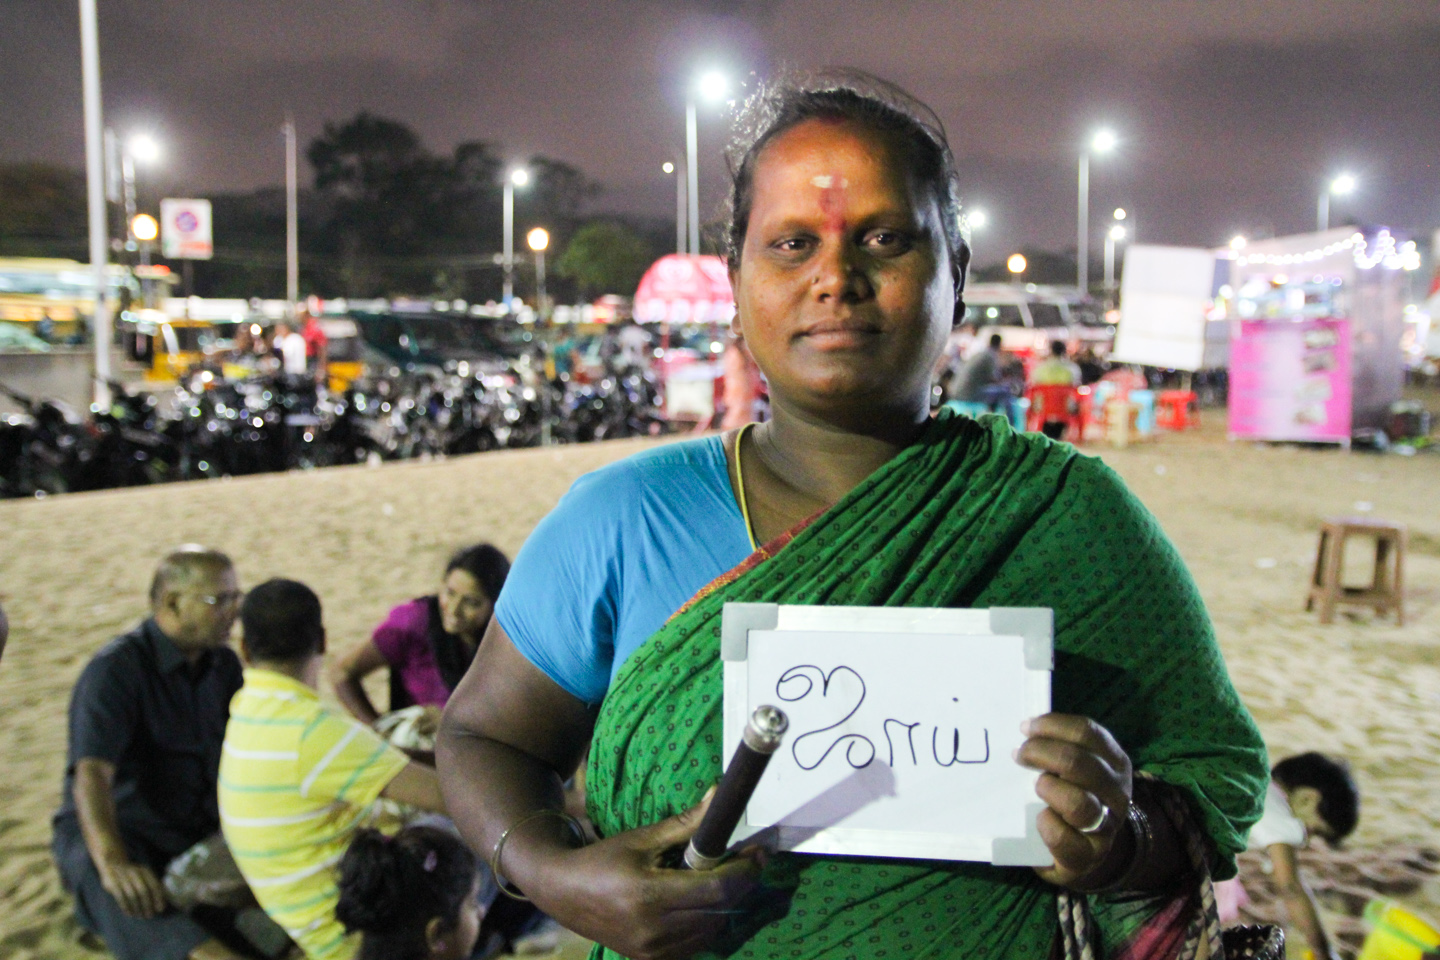 Laxmi has been telling fortunes on Chennai's Marina Beach for 45 years. Her whole family is in the profession, but her daughter Megla goes to school and will not be continuing the tradition when she grows up.